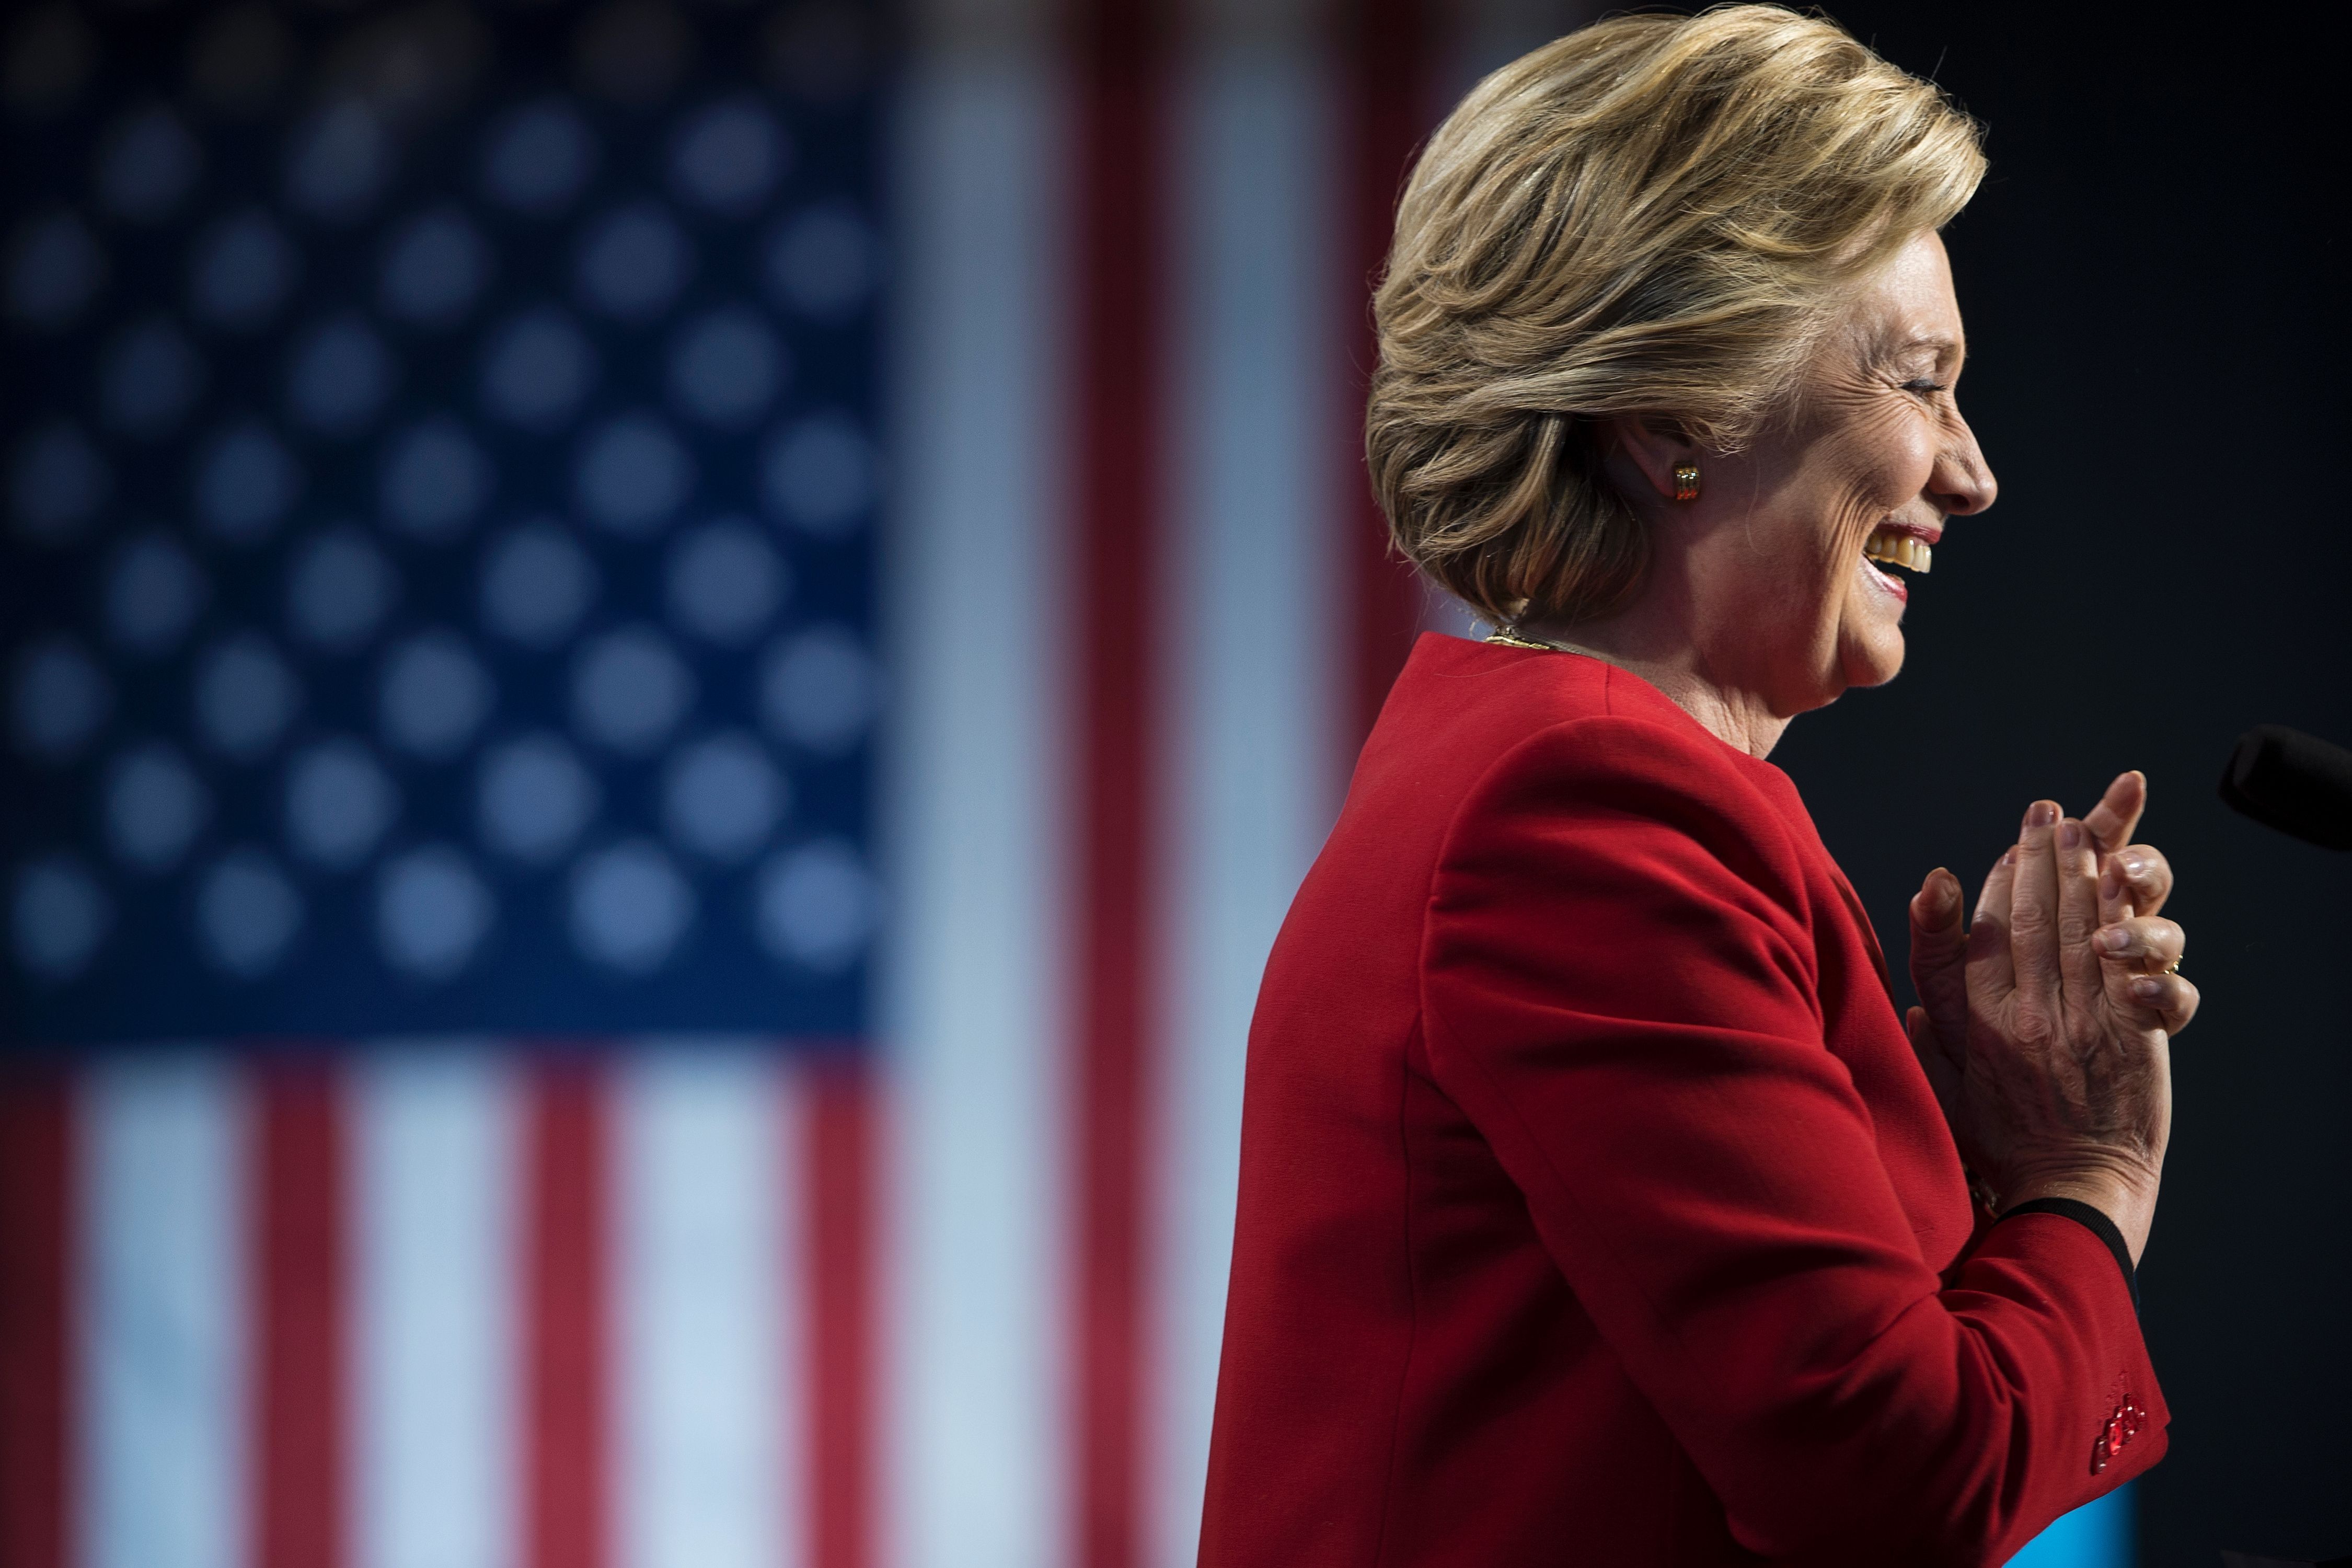 Democratic presidential nominee Hillary Clinton arrives for a rally at the Grand Valley State University Fieldhouse November 7, 2016 in Allendale, Michigan.